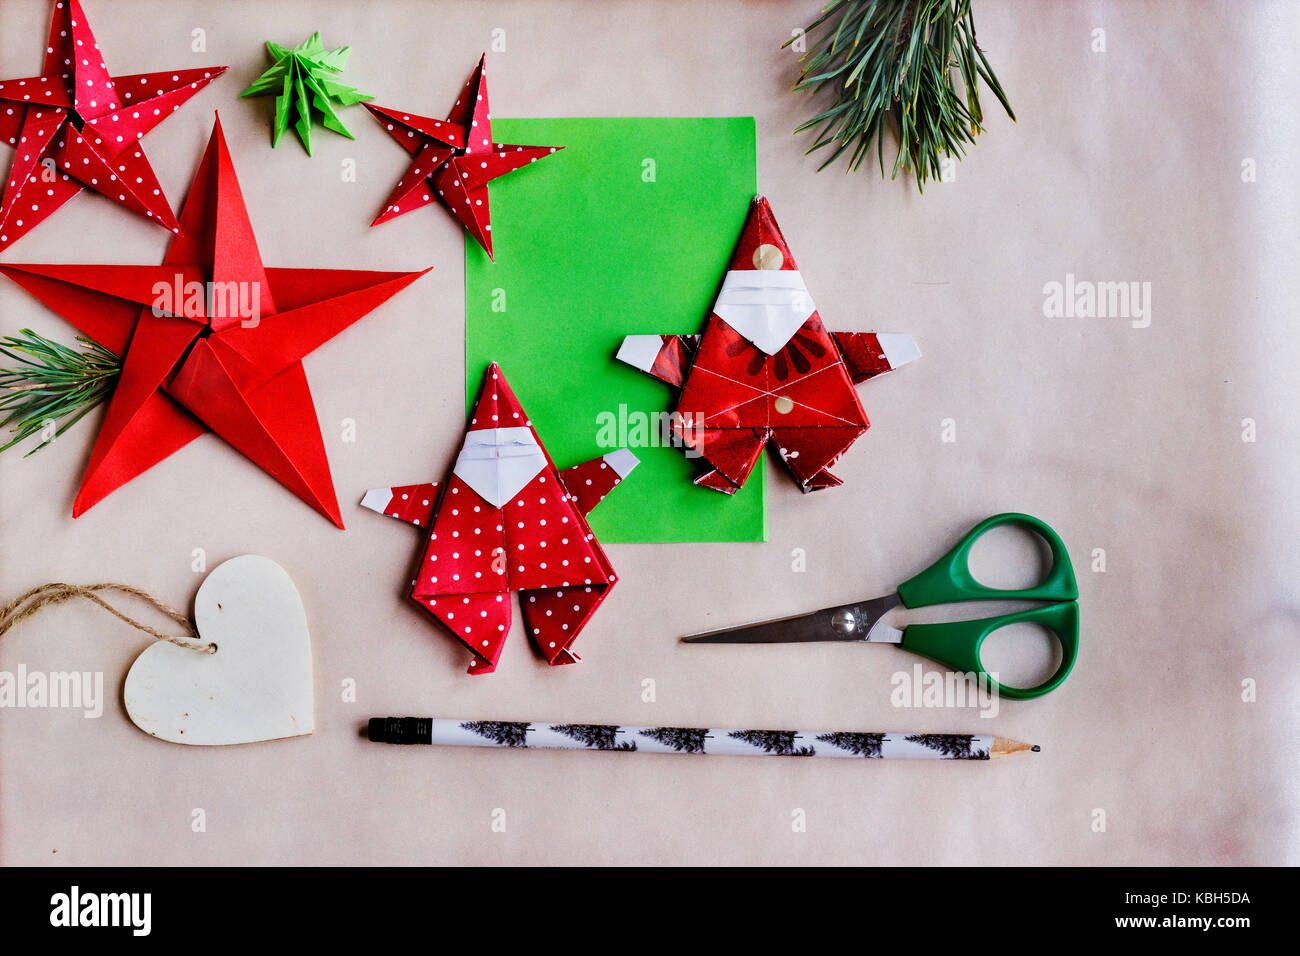 Origami Christmas Ornaments to Make with Photo Instructions | 956x1300